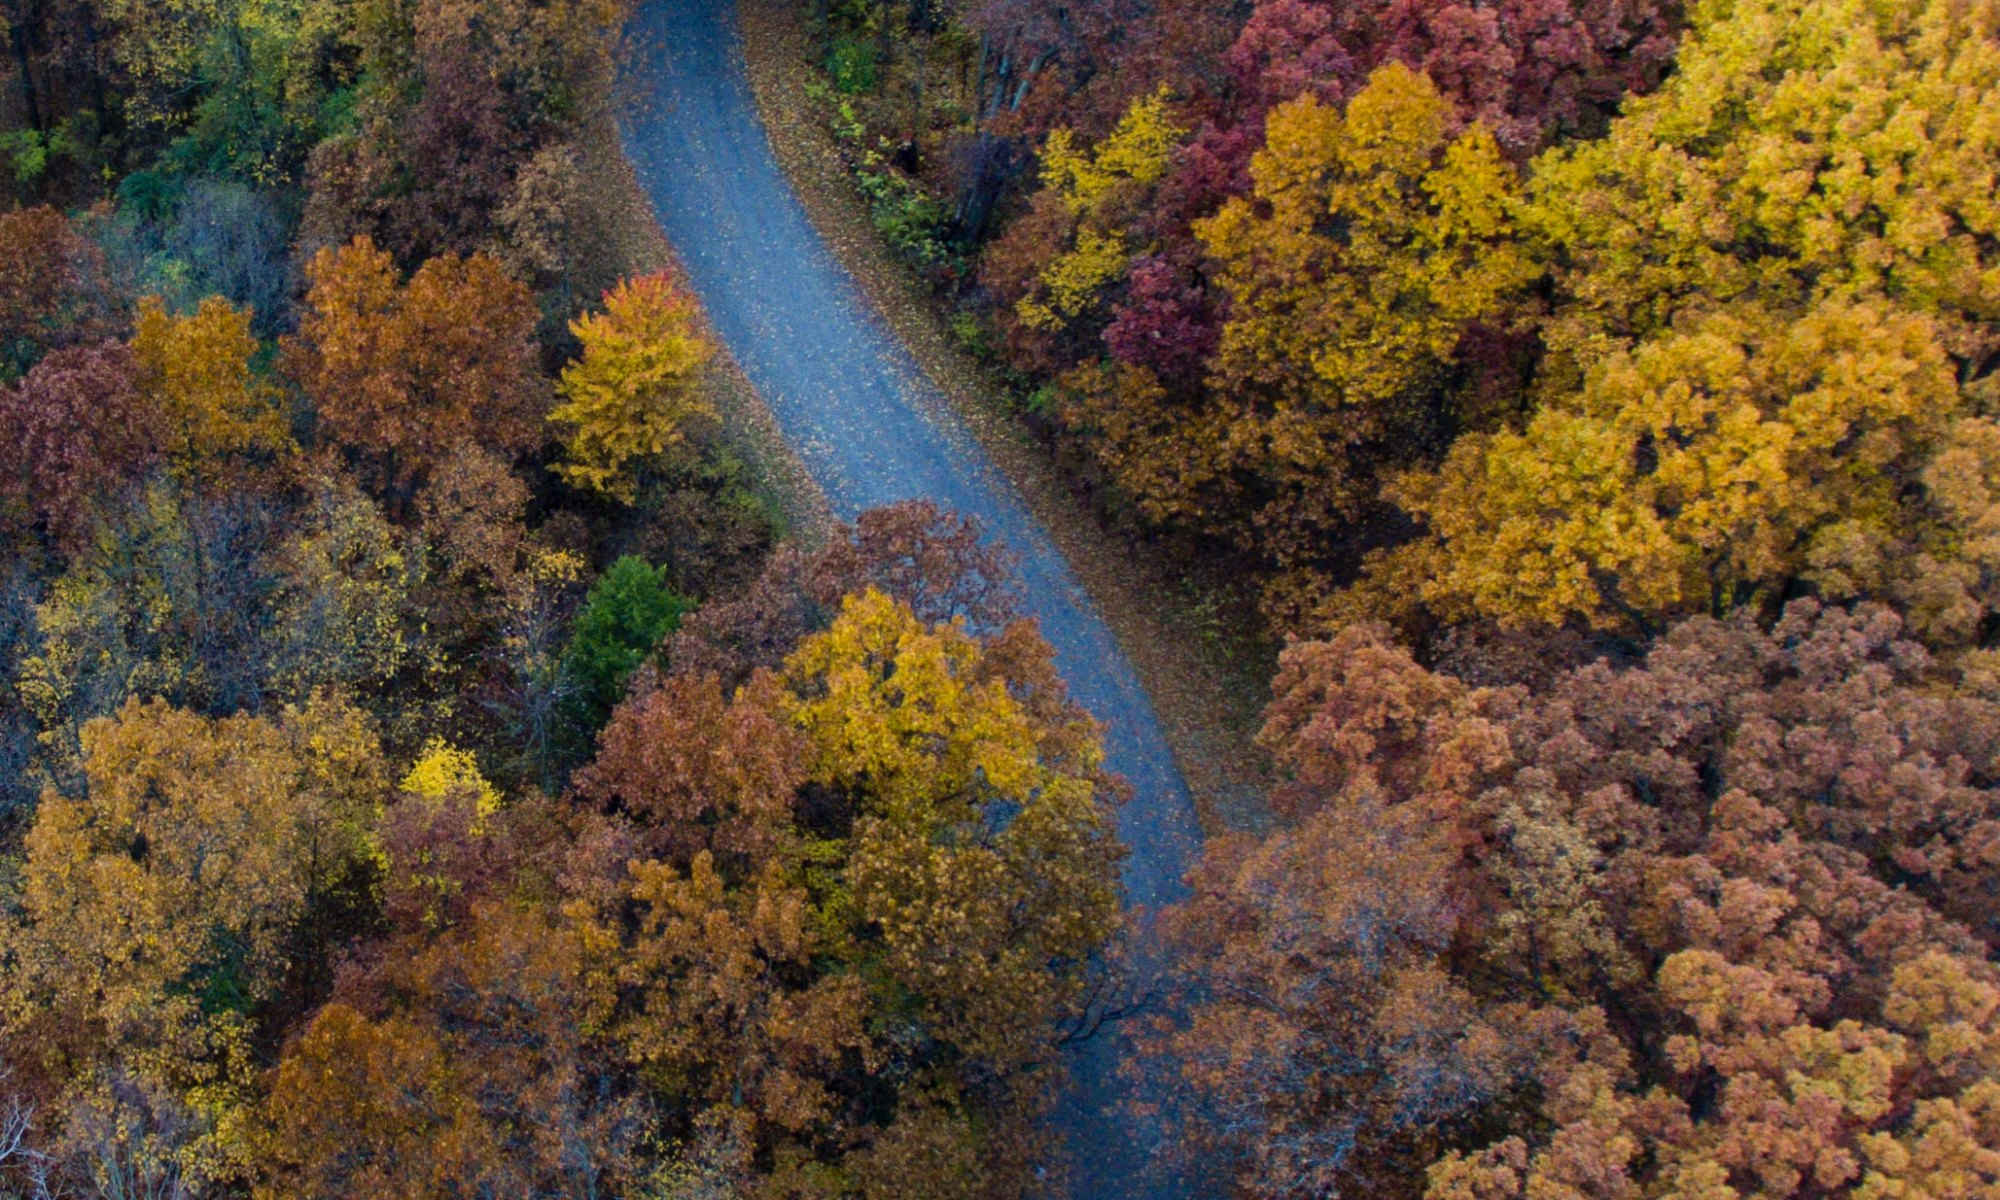 trees by road and fall foliage